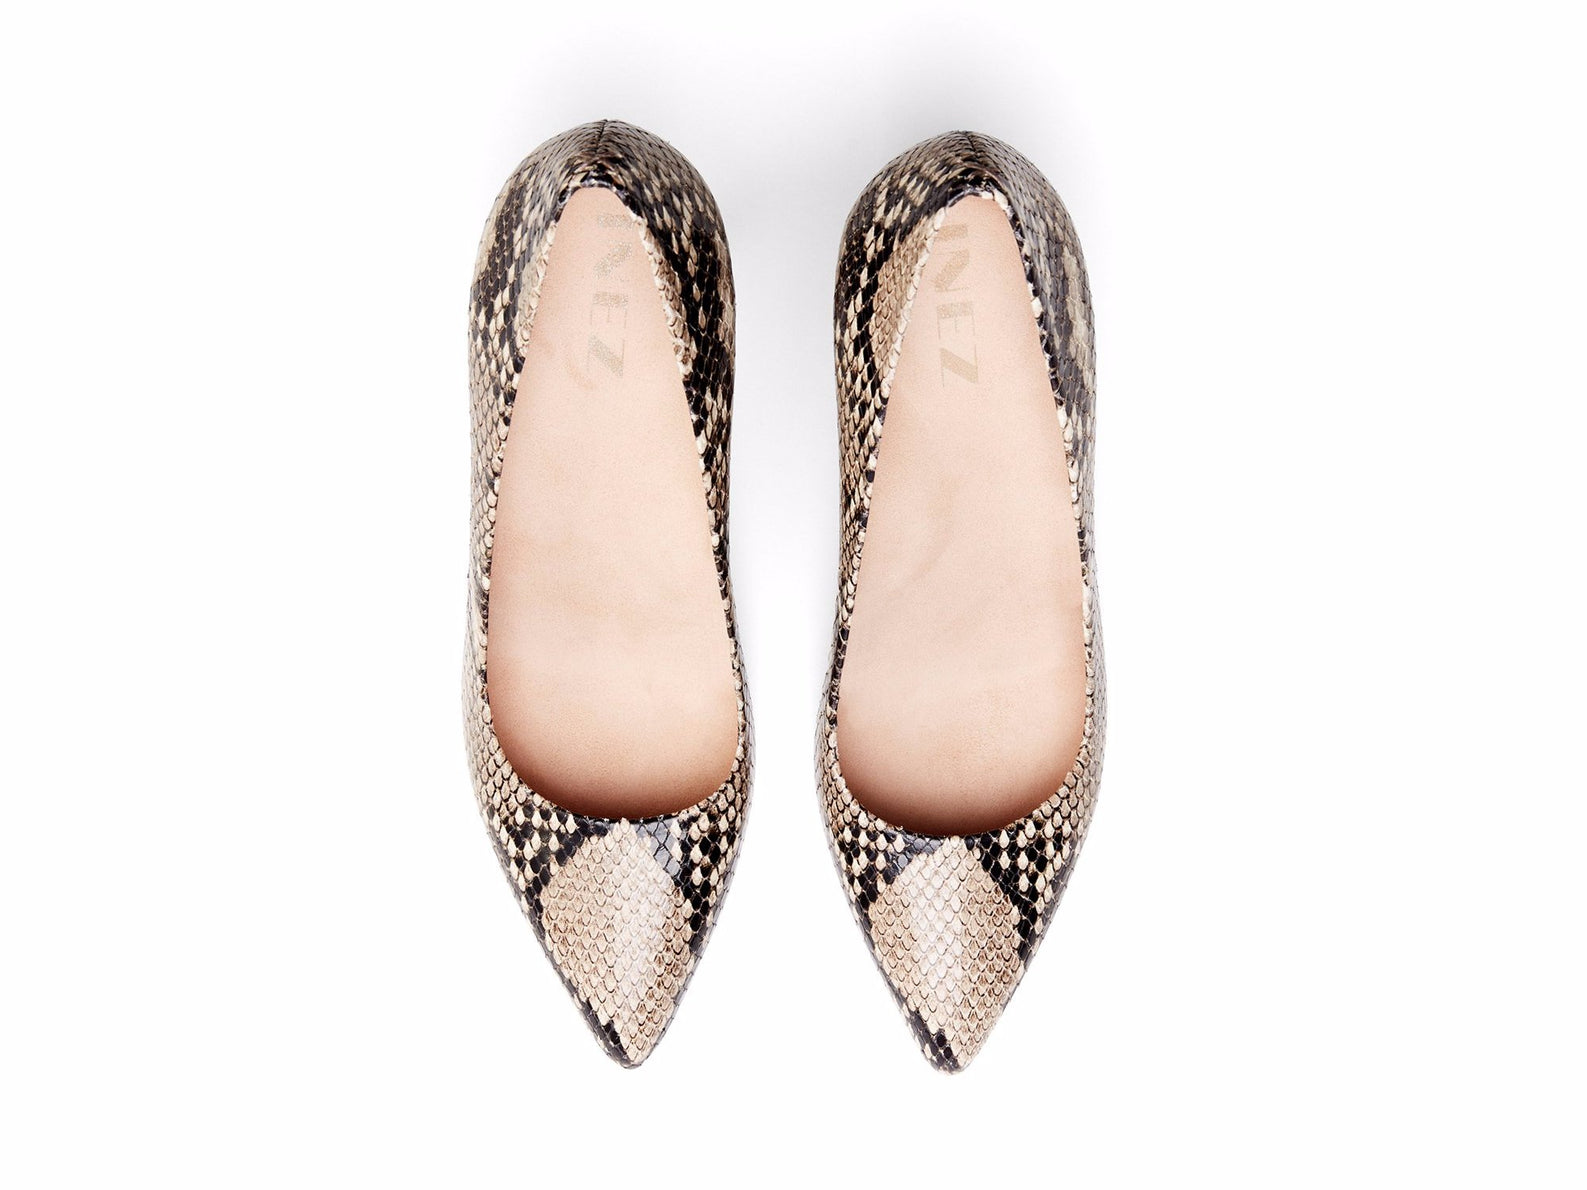 INEZ shoes Alta women pointed toe stiletto pump comfortable heel natural snake emboss leather